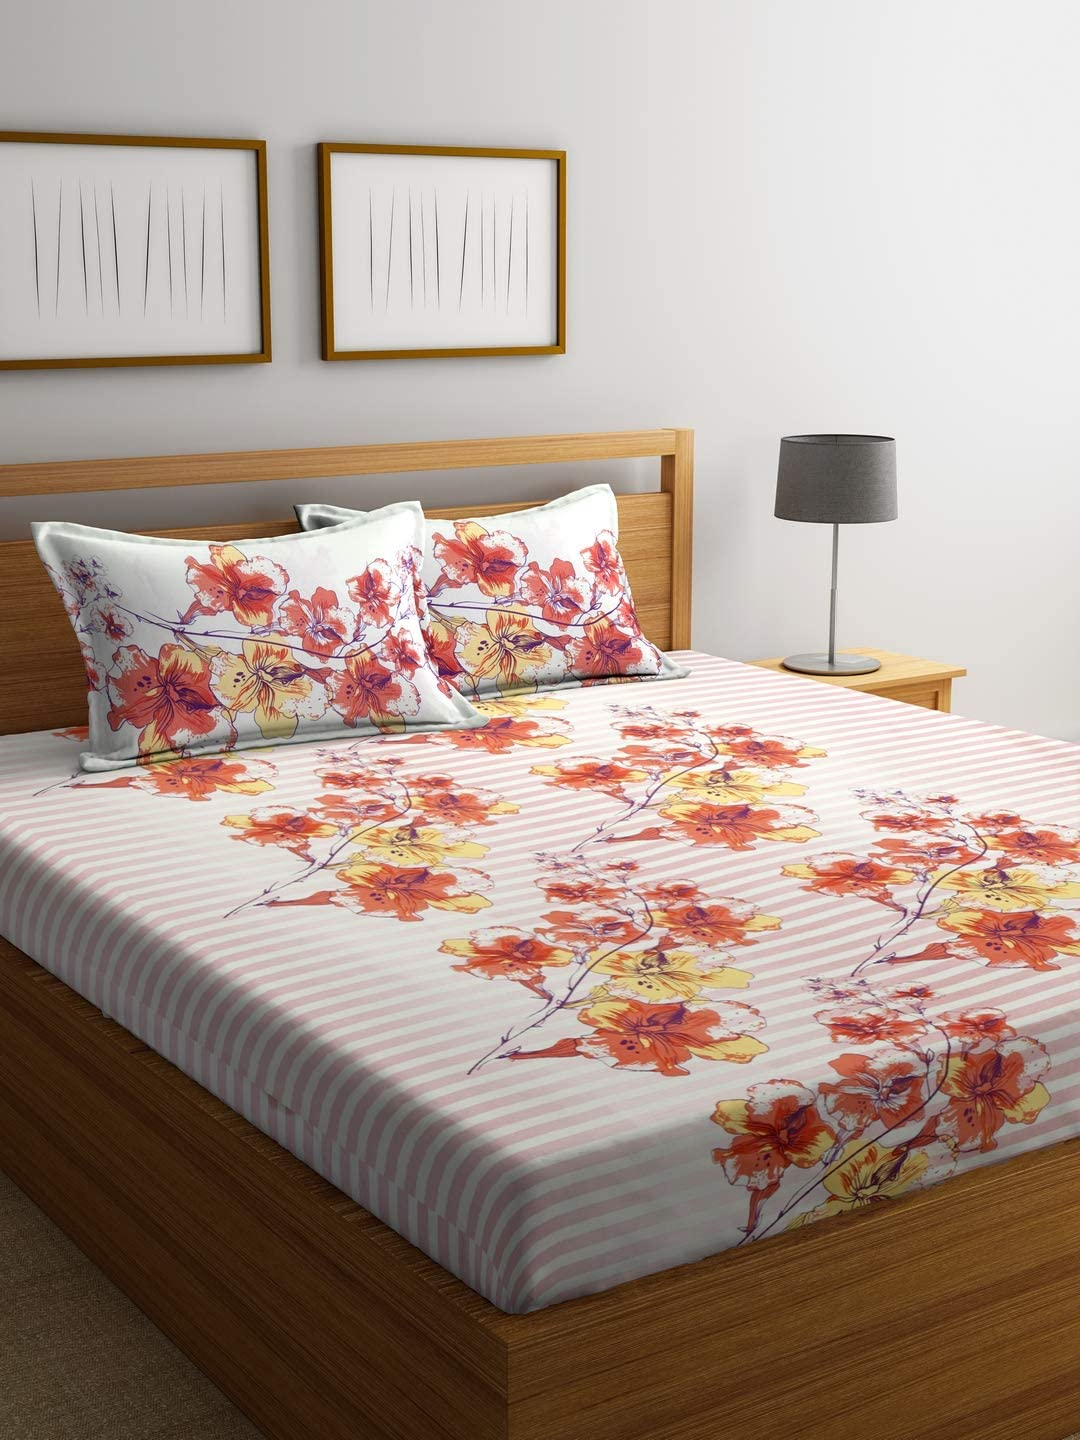 Bombay Dyeing 130 TC Polyester and Cotton Double Bedsheet with 2 Pillow Covers - Folige, Orange